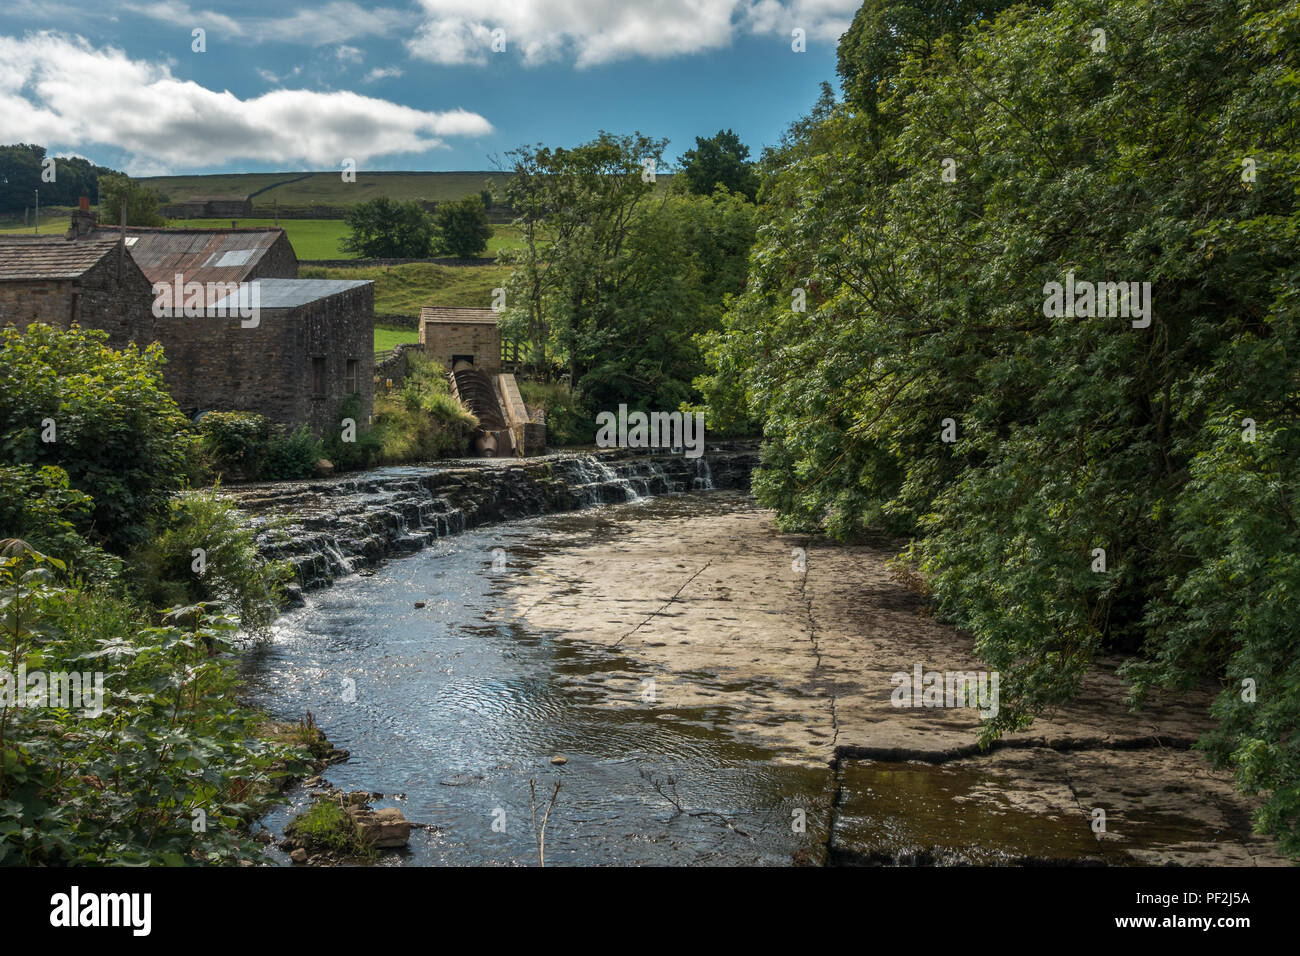 River Bain Hydro, a community owned screw turbine, powers most of the 40 properties in the village of Bainbridge, North Yorkshire, with excess electri - Stock Image